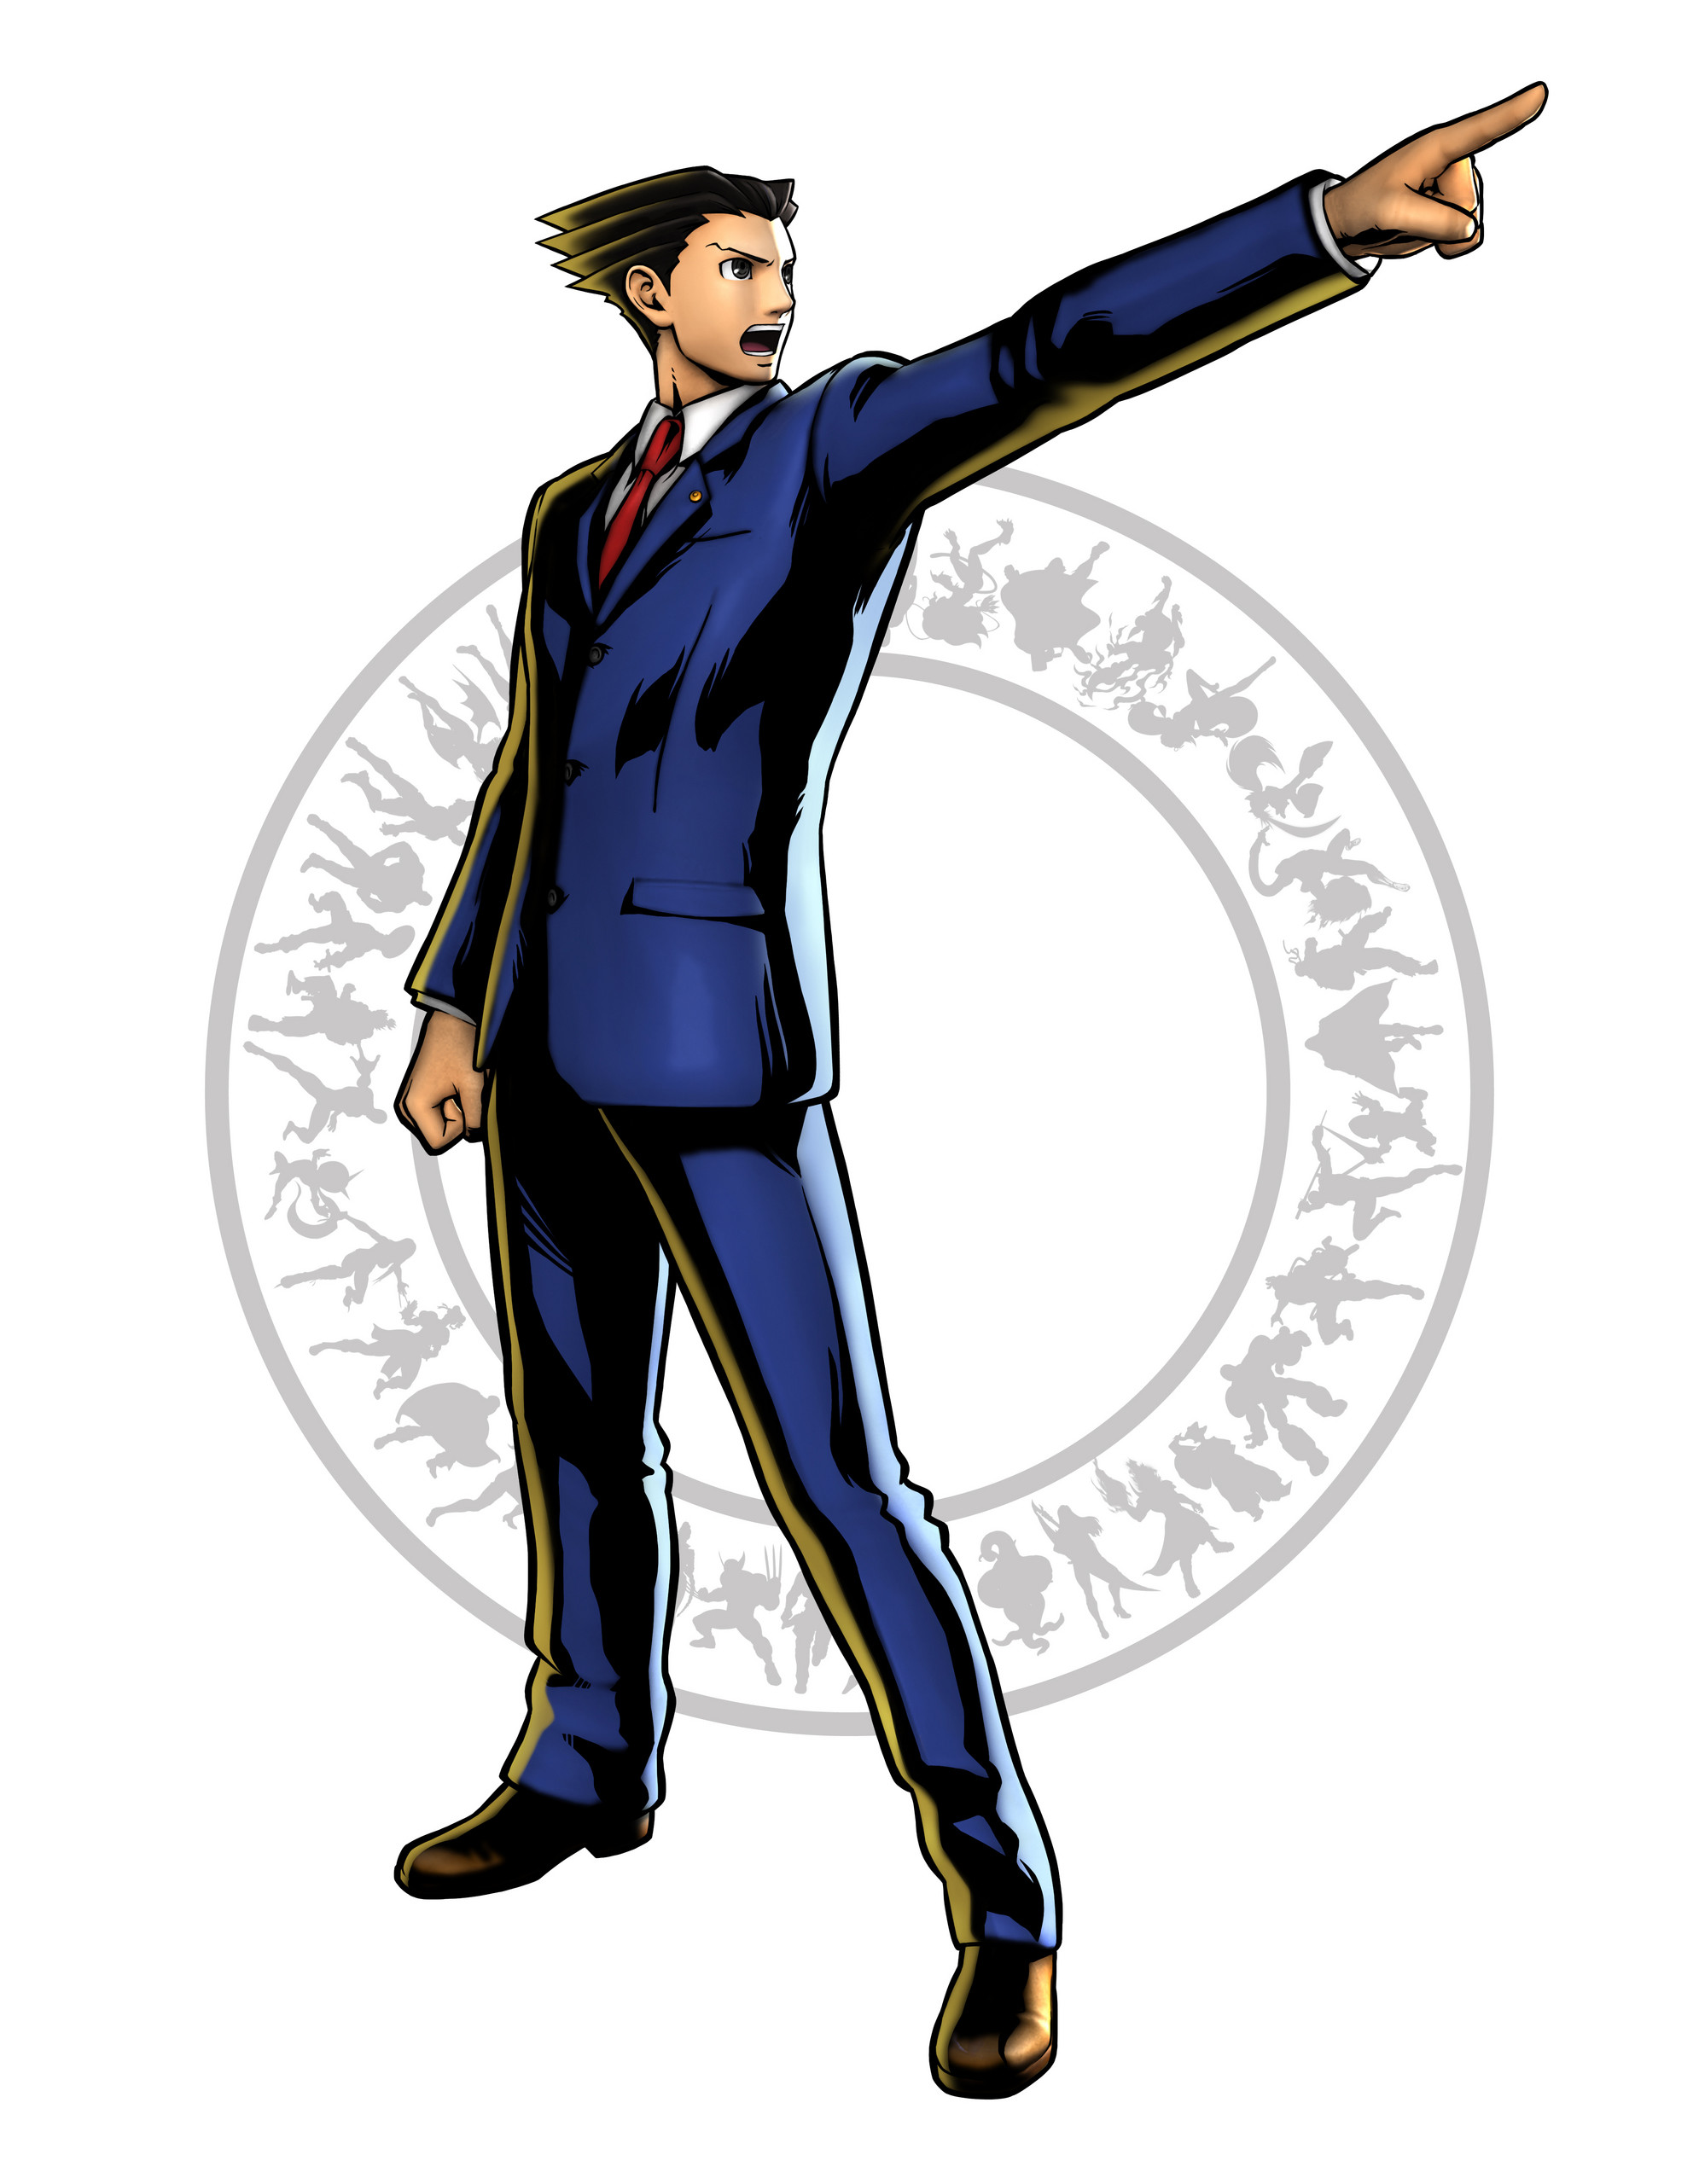 Phoenix Wright images Ultimate Marvel Vs. Capcom 3 – Phoenix Wright HD  wallpaper and background photos